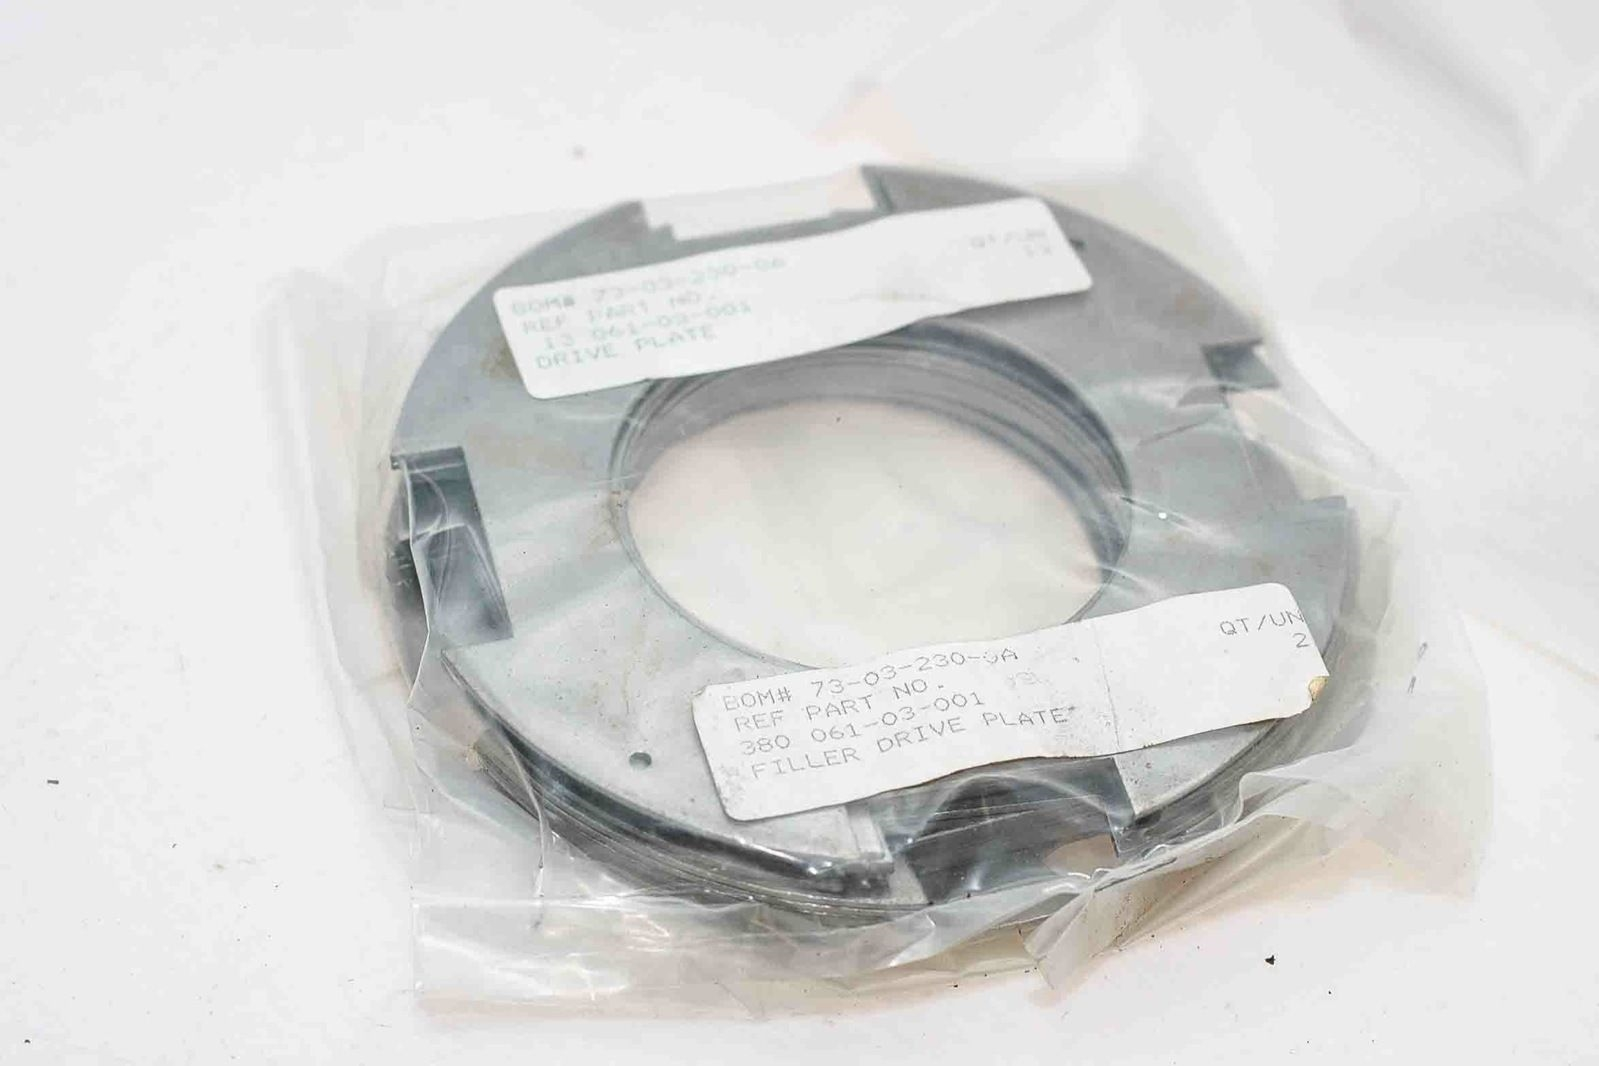 15 FILLER DRIVE PLATES 13 061-03-001 NEW IN FACTORY SEALED PACKAGE FASTSHIP H102 2